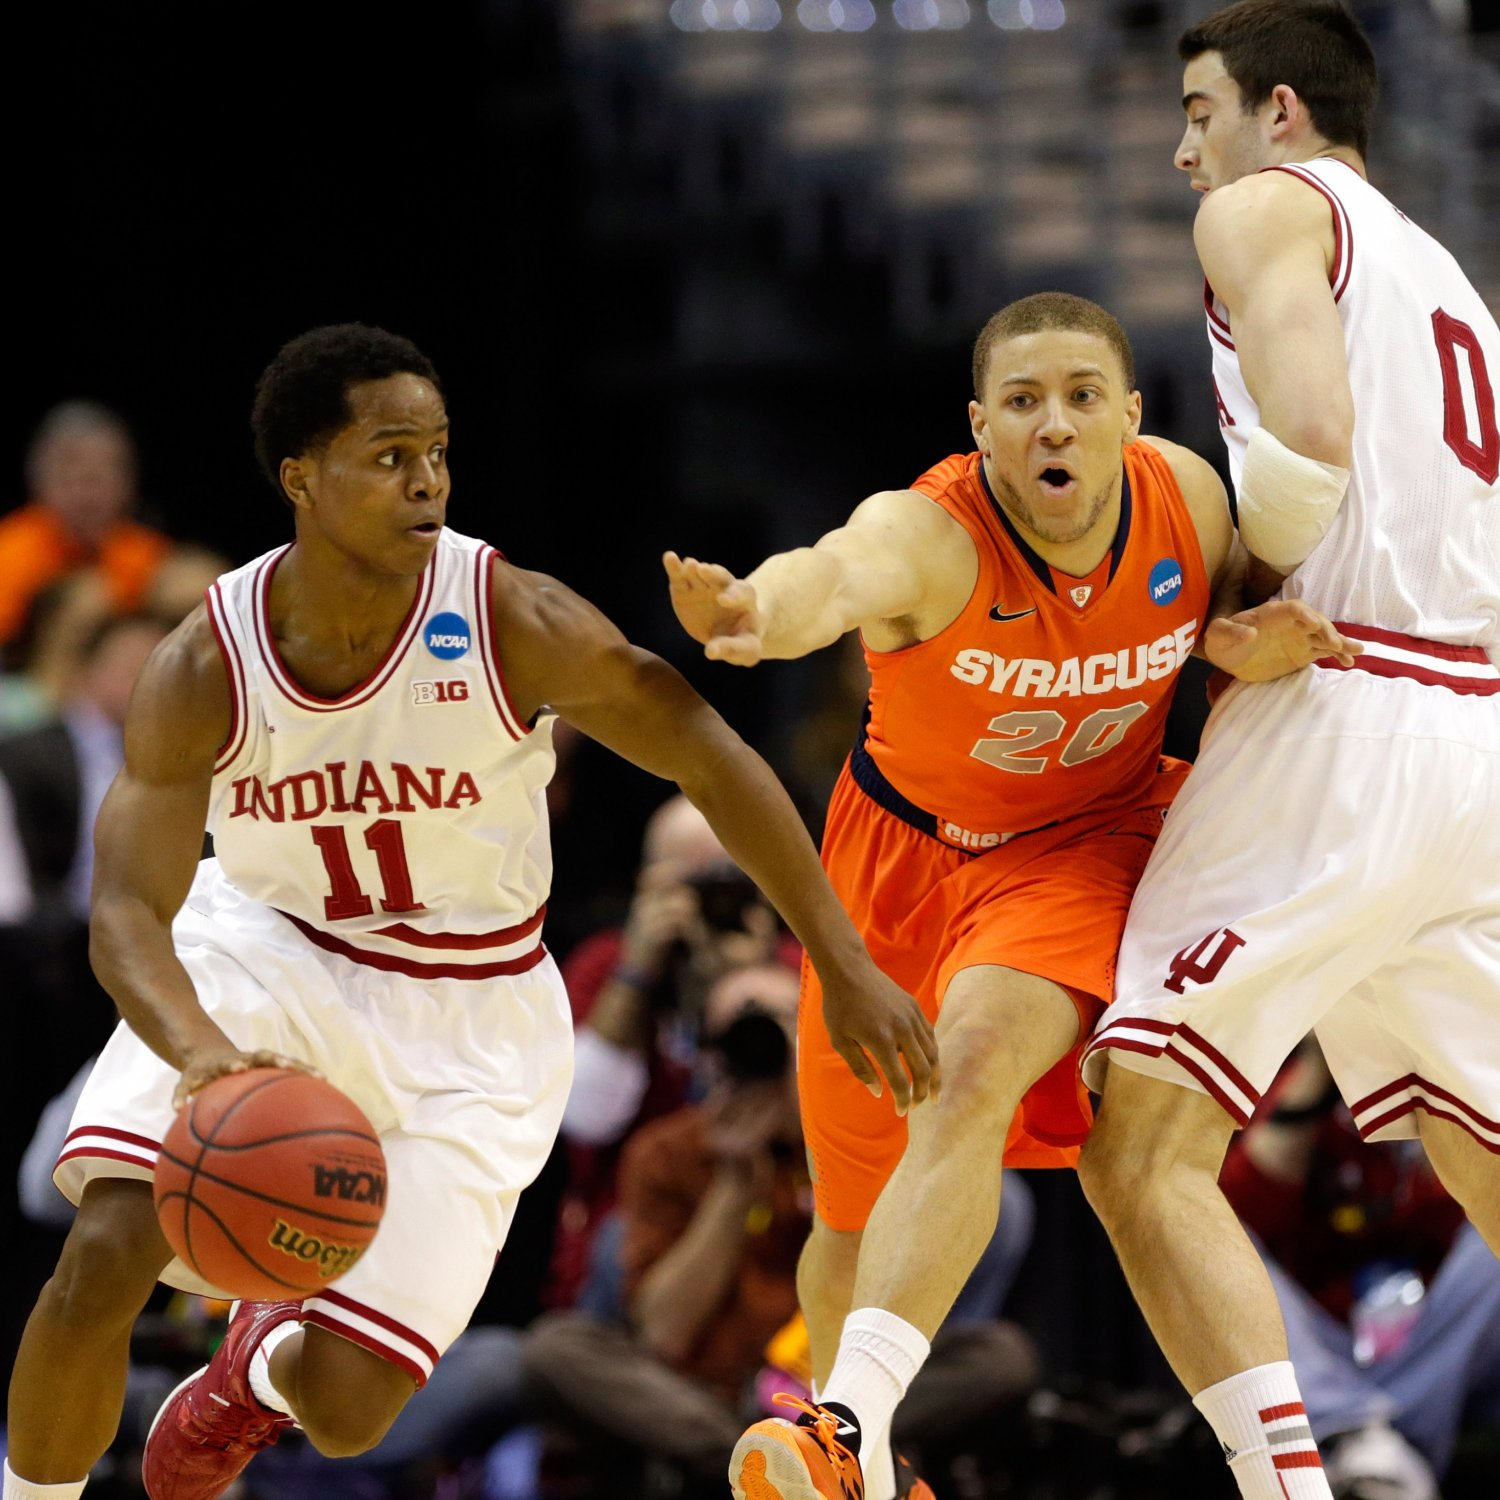 Blazer Team Roster 2013: Indiana Basketball: Power Ranking The Players On The